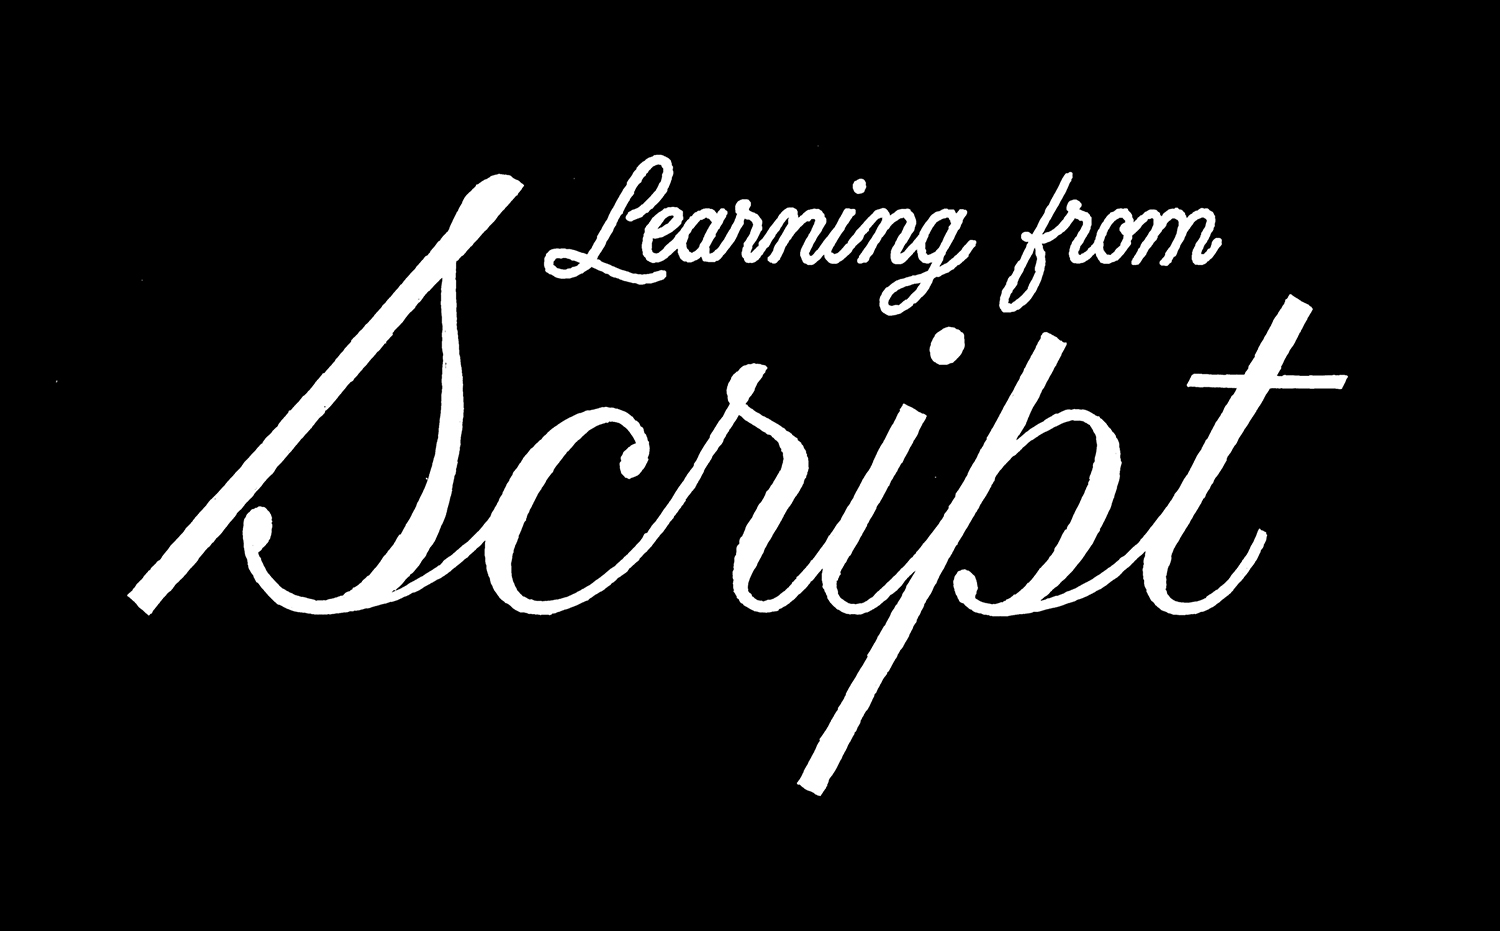 Learning from Script logo